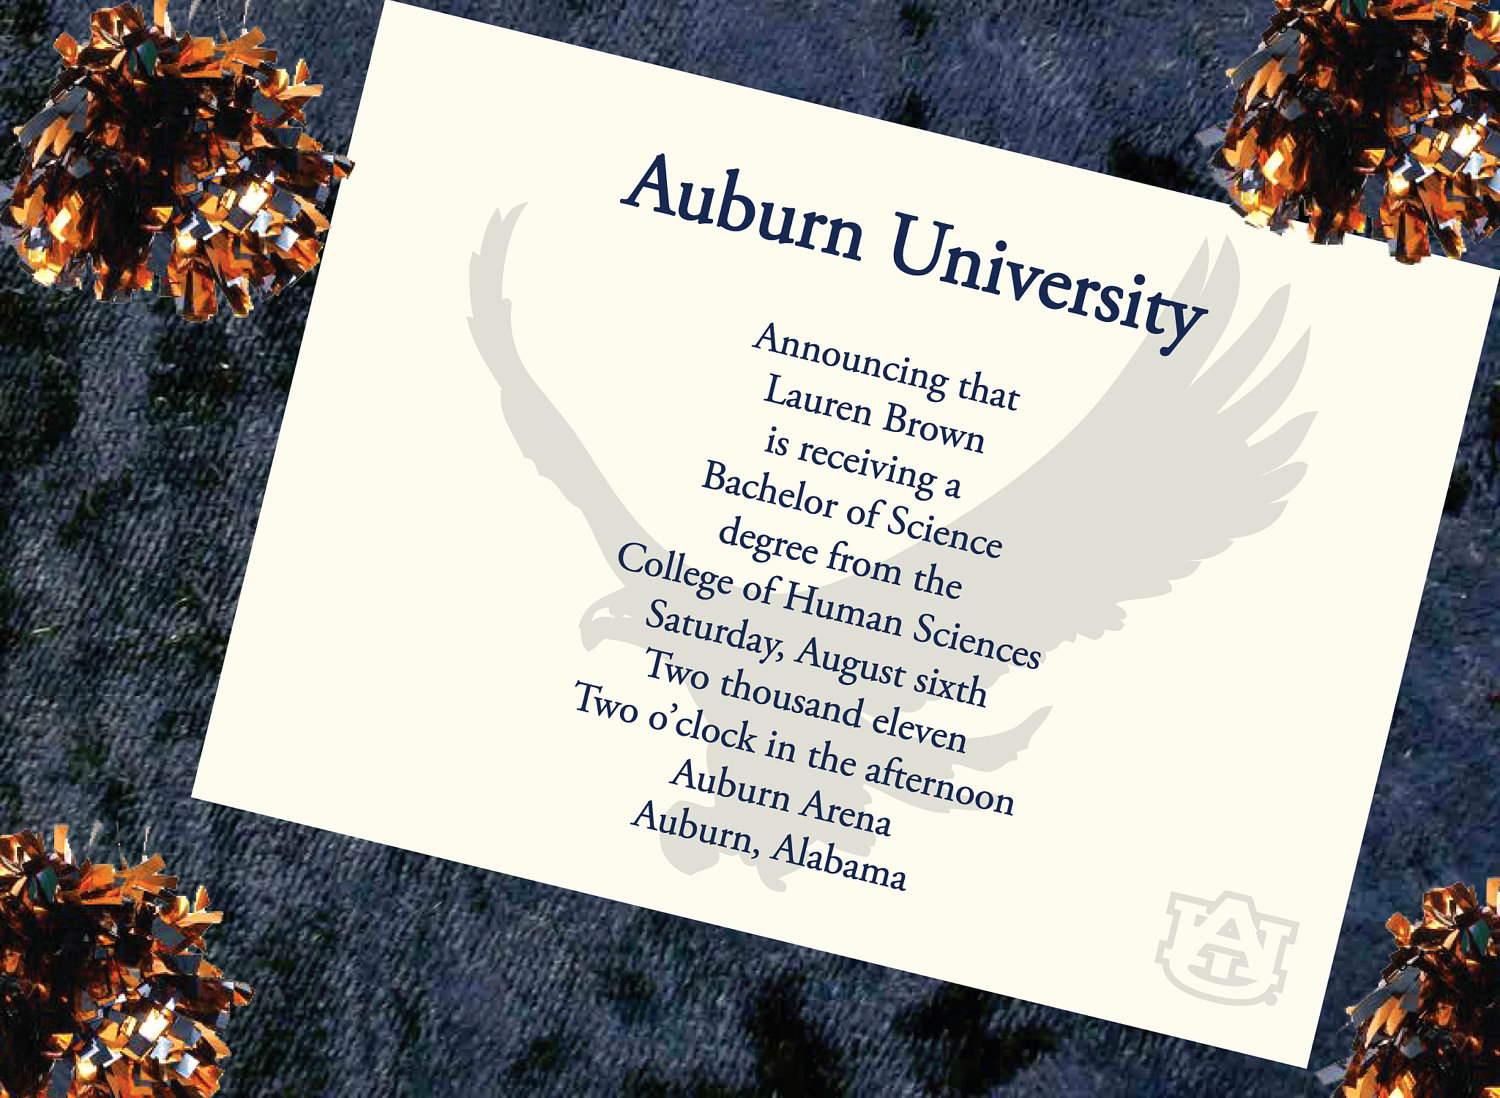 Masters Graduation Invitation Wording Awesome Items Similar to Auburn University Graduation Announcement